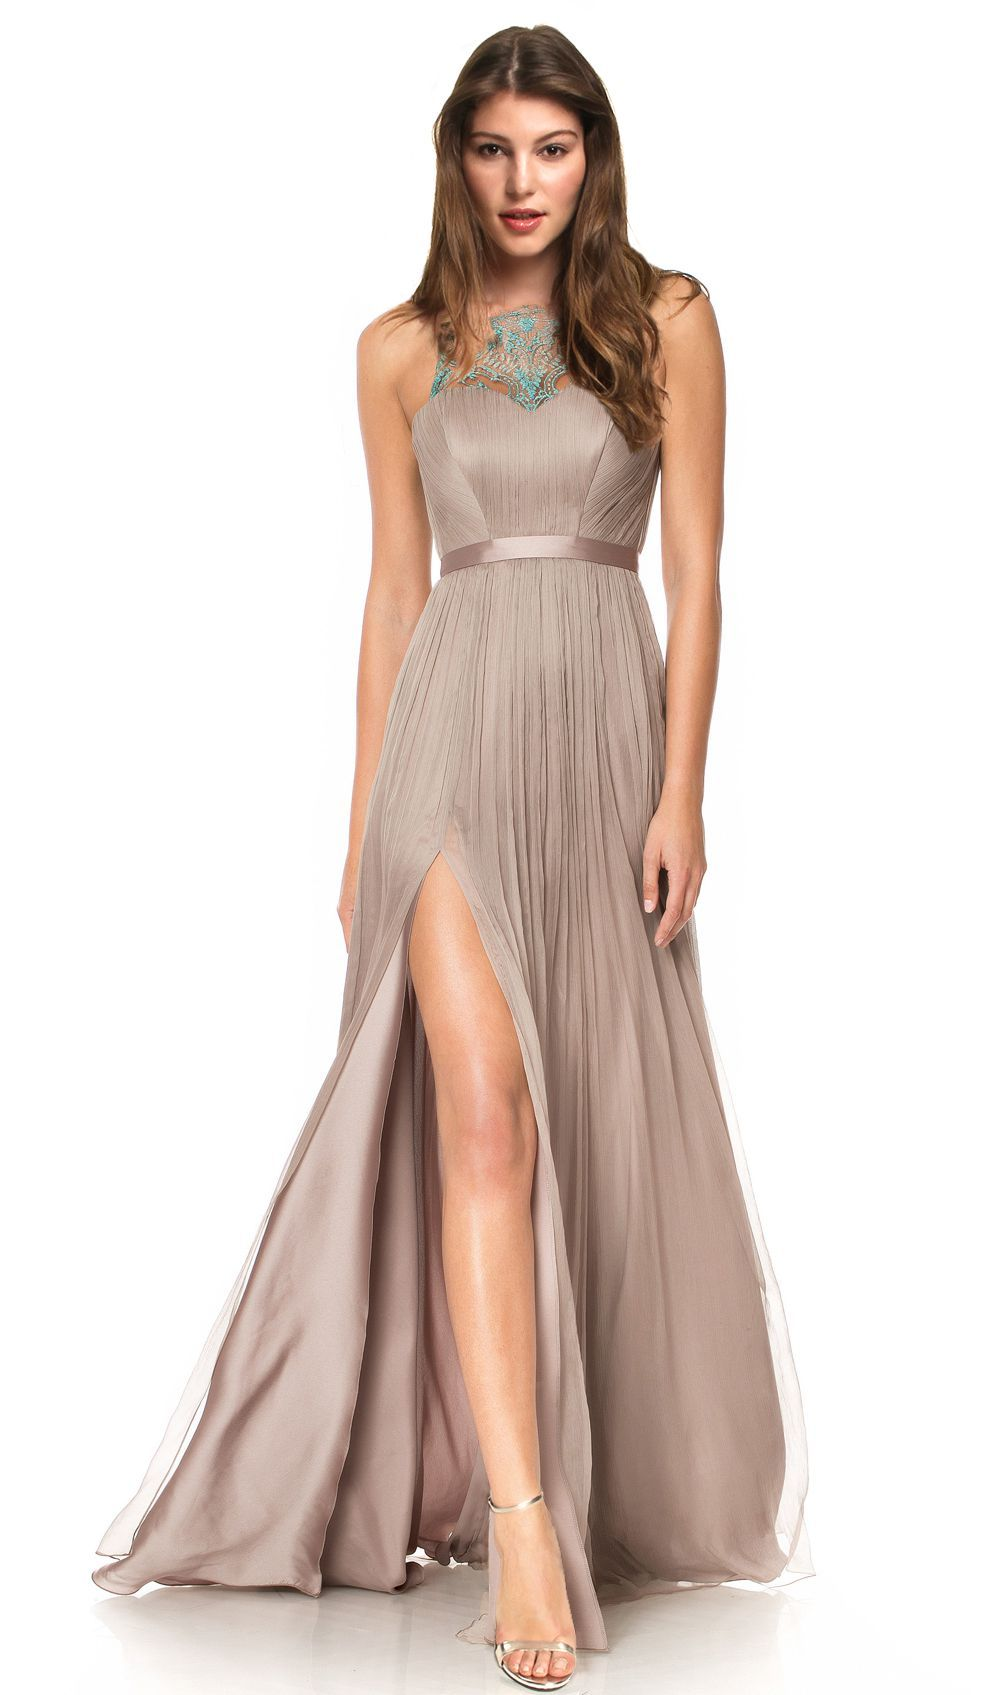 Cristallini Taupe Gown | Chic by Choice | Hire Designer Dresses ...